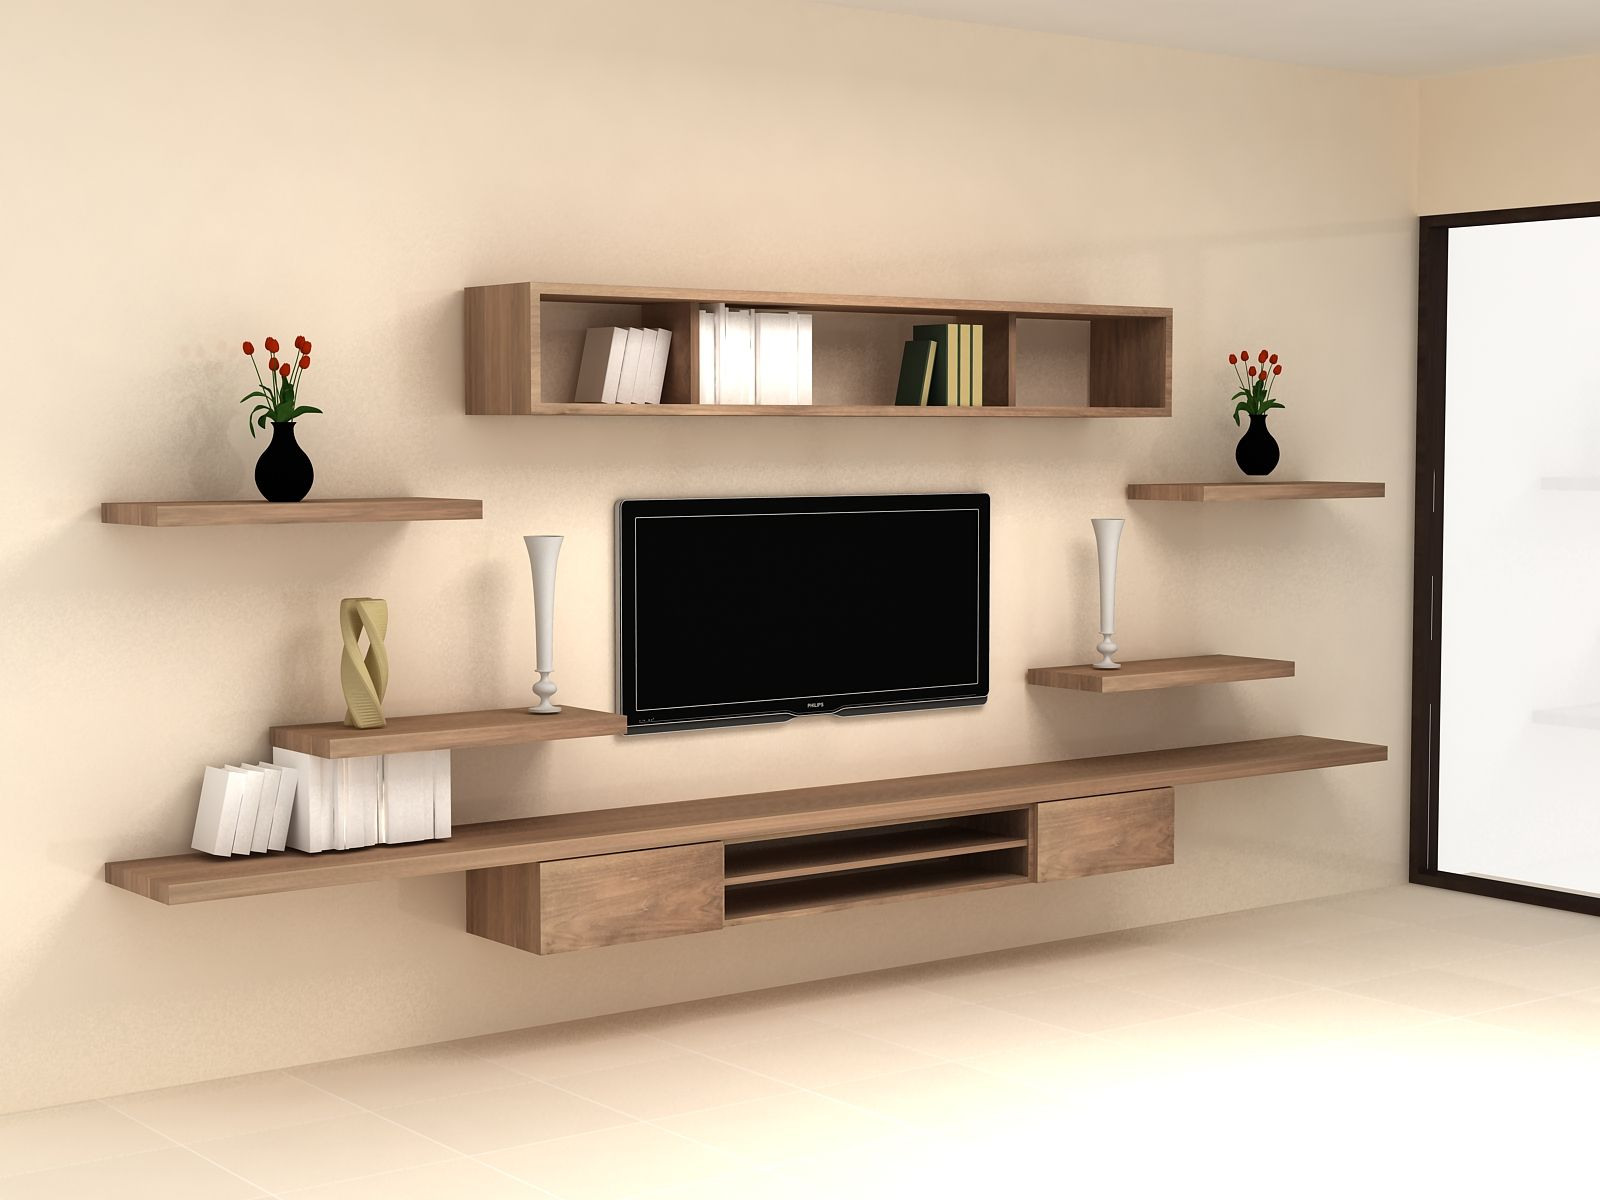 Wall hung tv cabinet 1 pinteres - Designs of tv cabinets in living room ...